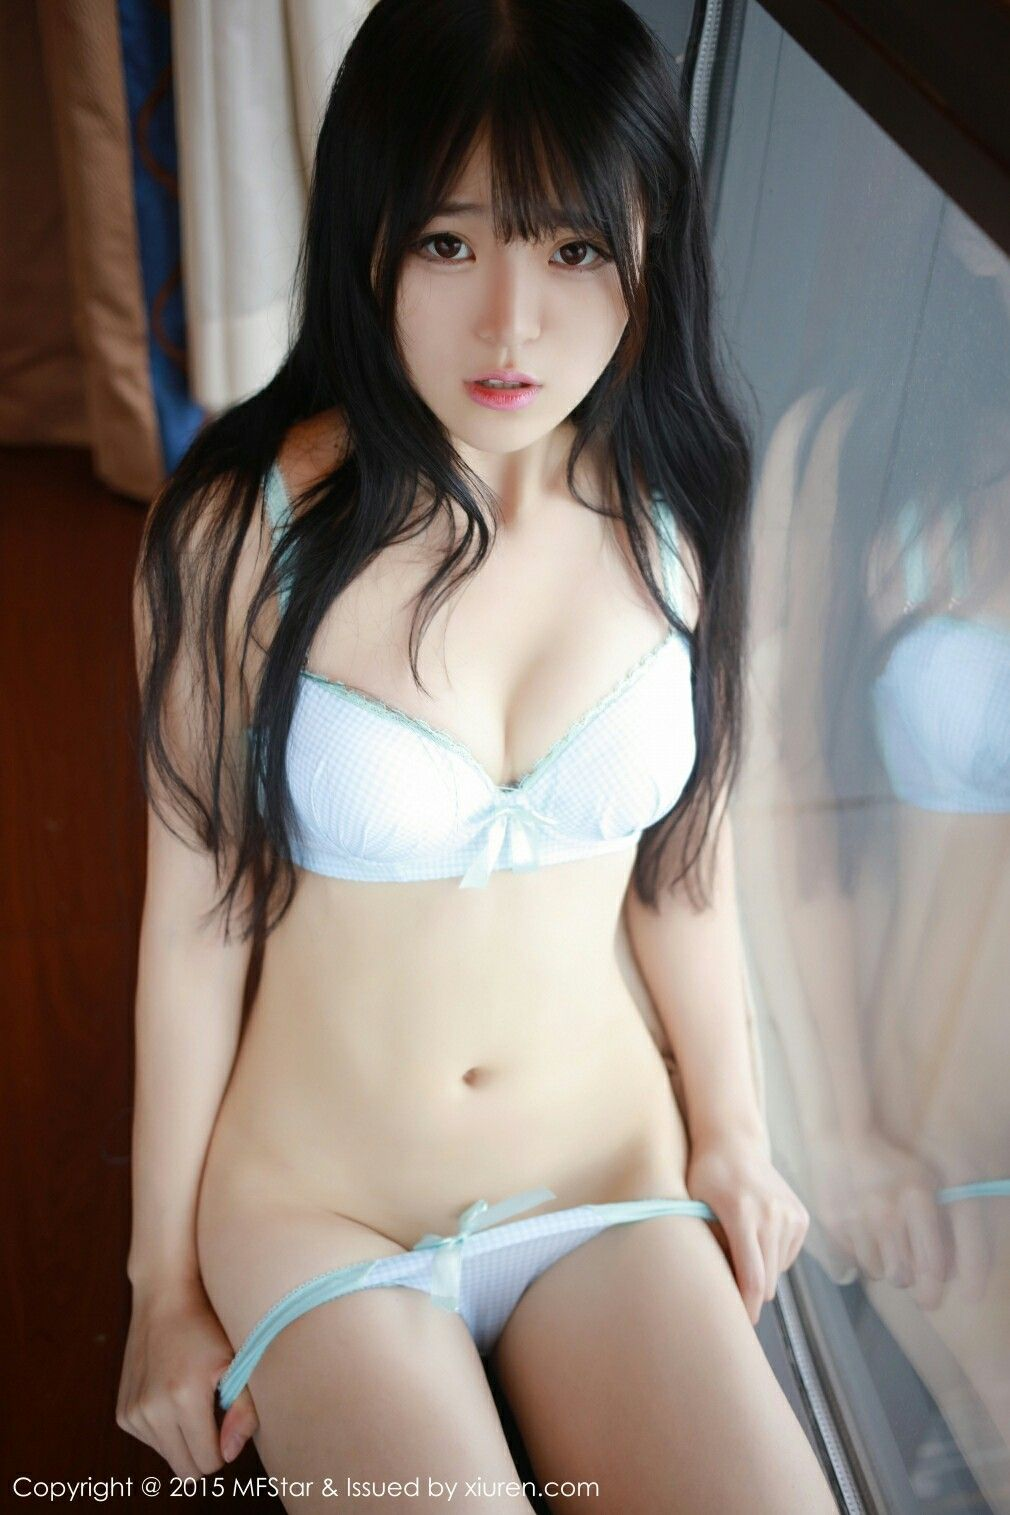 asian girls are sexy